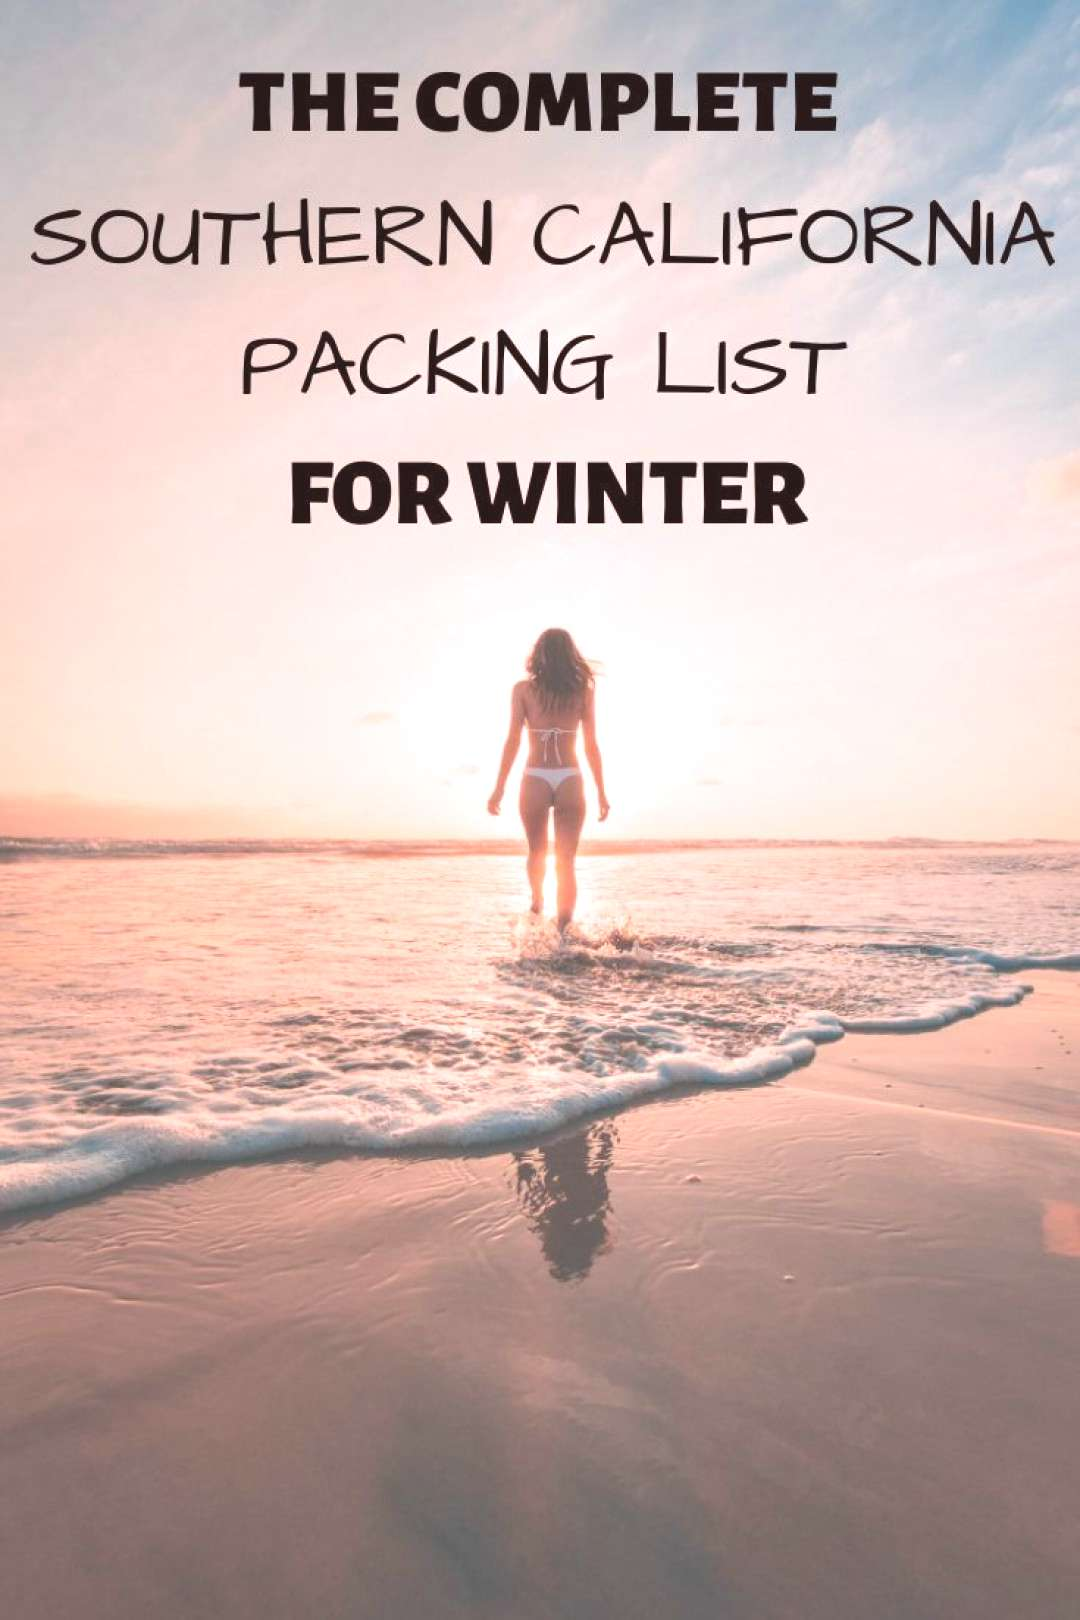 The Ultimate Packing Guide Come visit Southern California in the Winter! Get a break from the snow